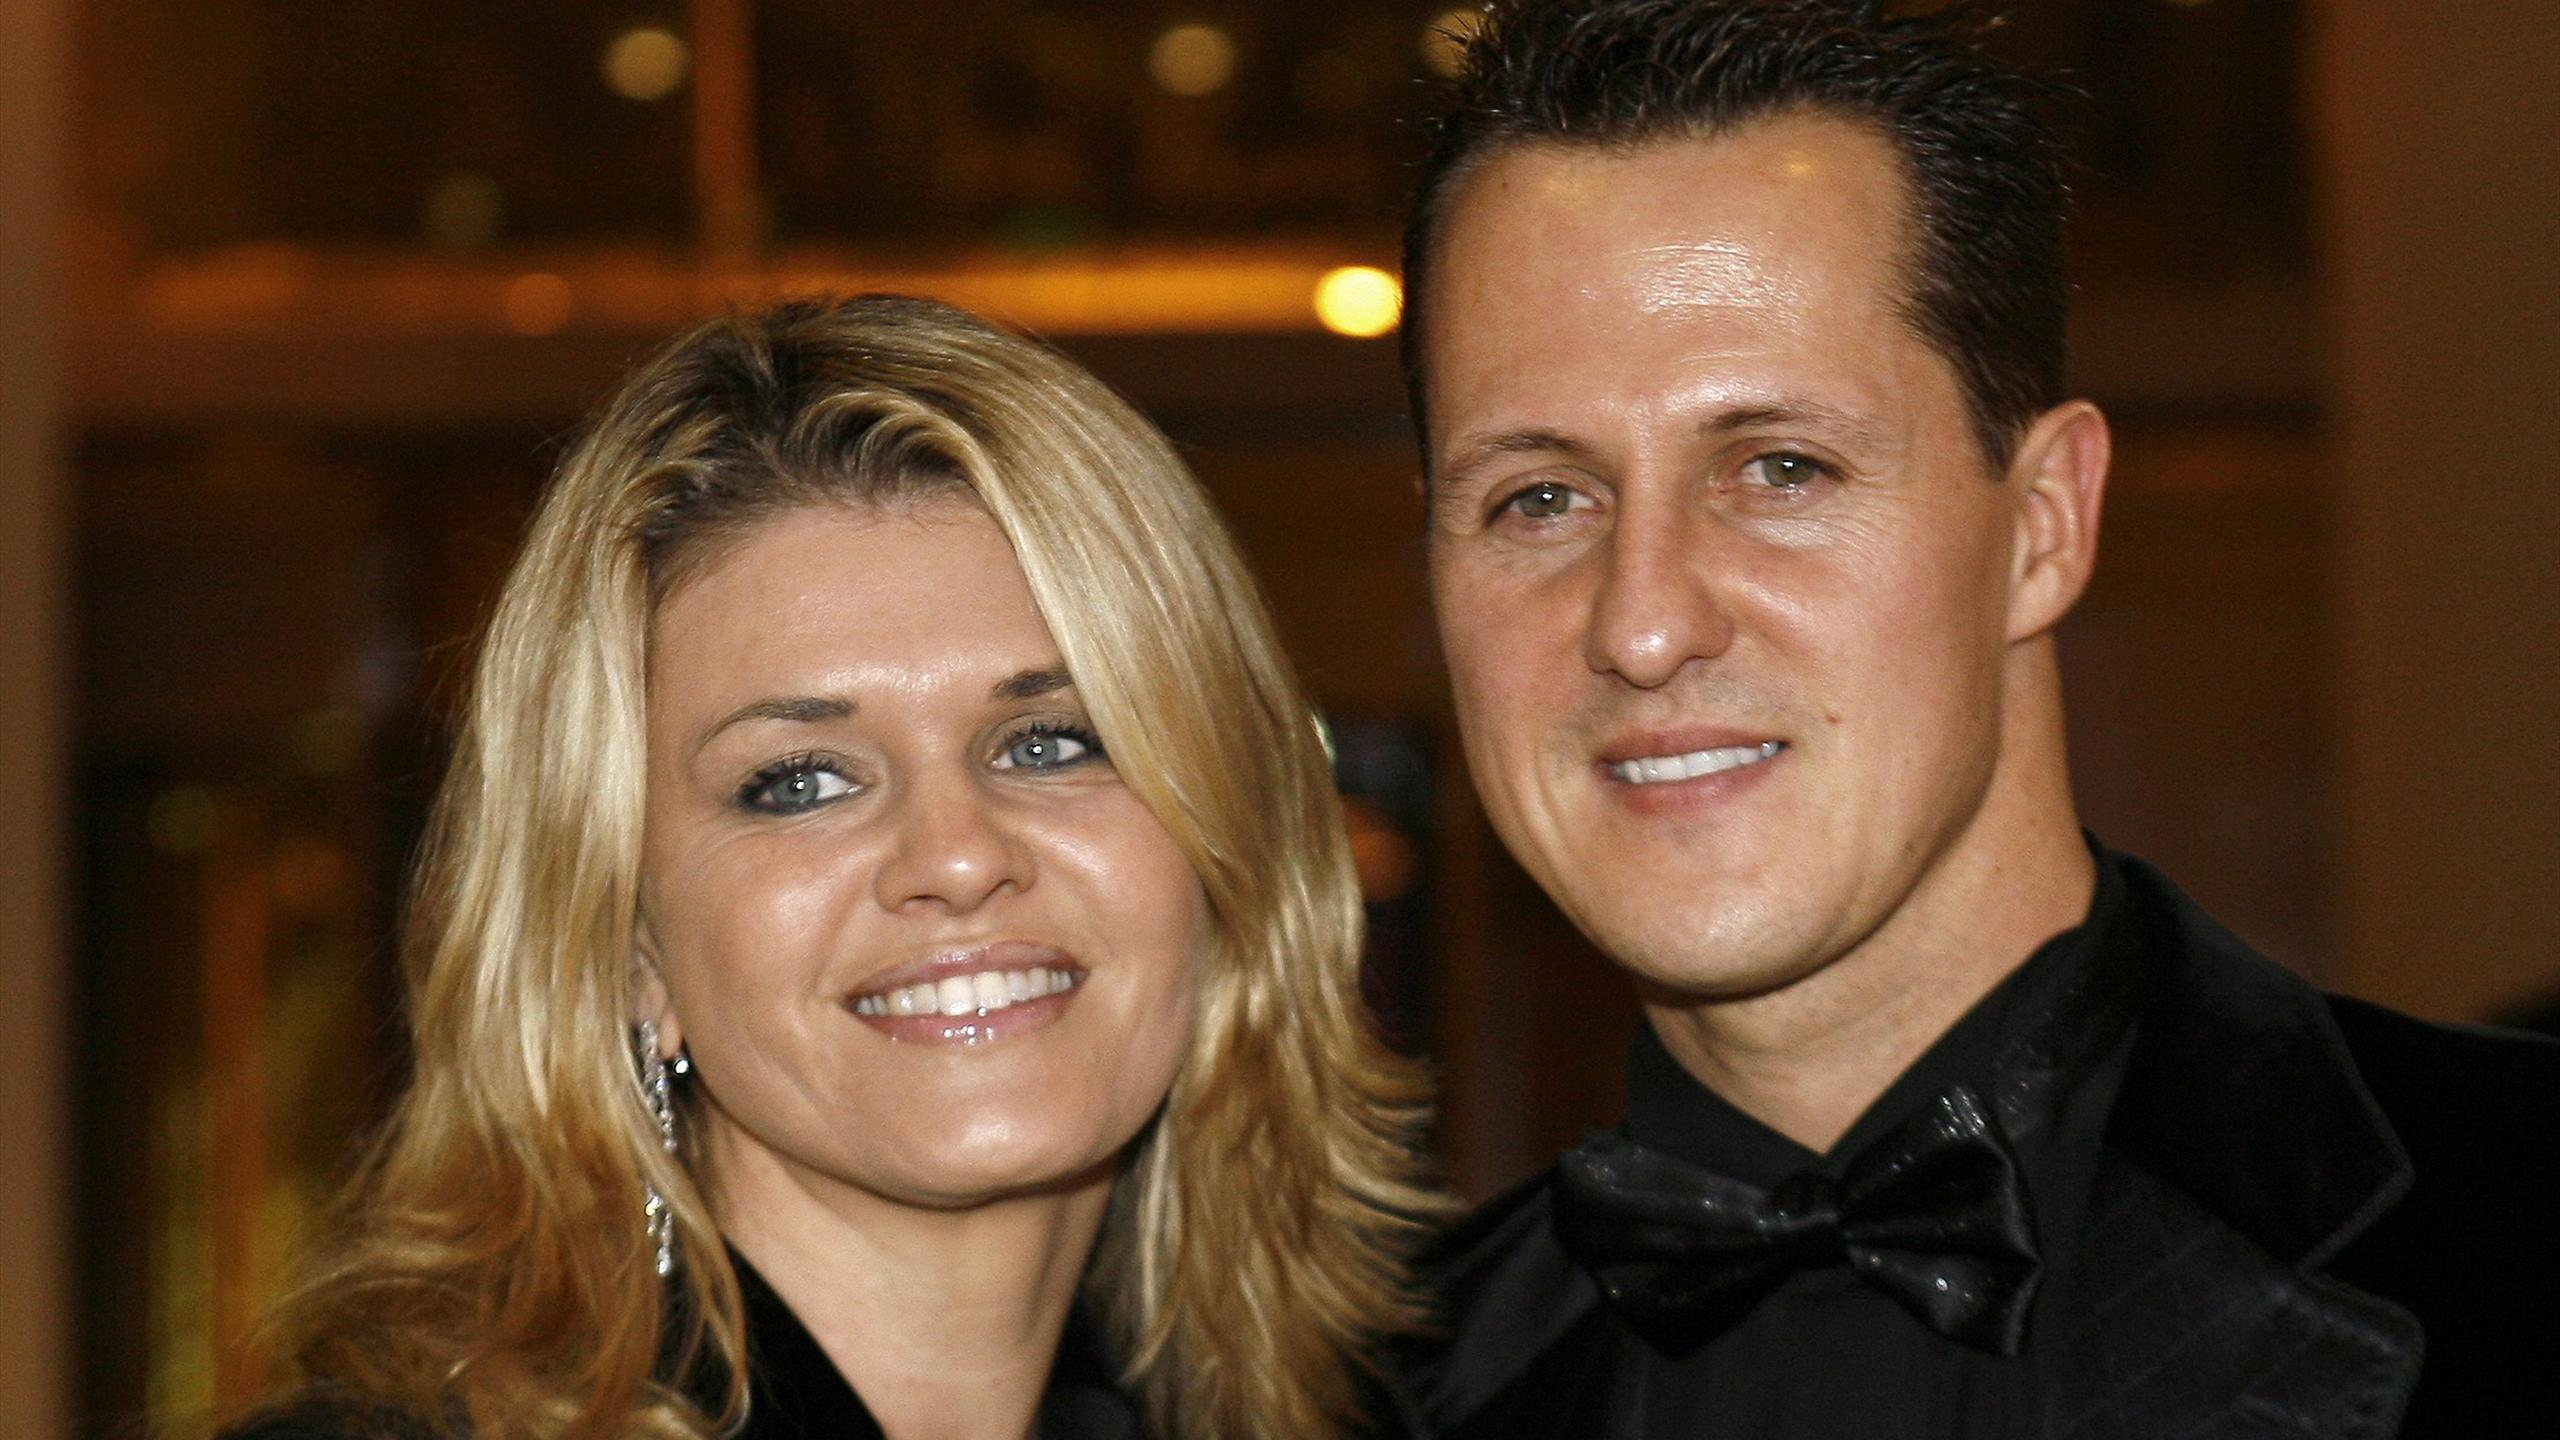 Formula 1 - Schumacher;#39;s wife releases touching letter to fans